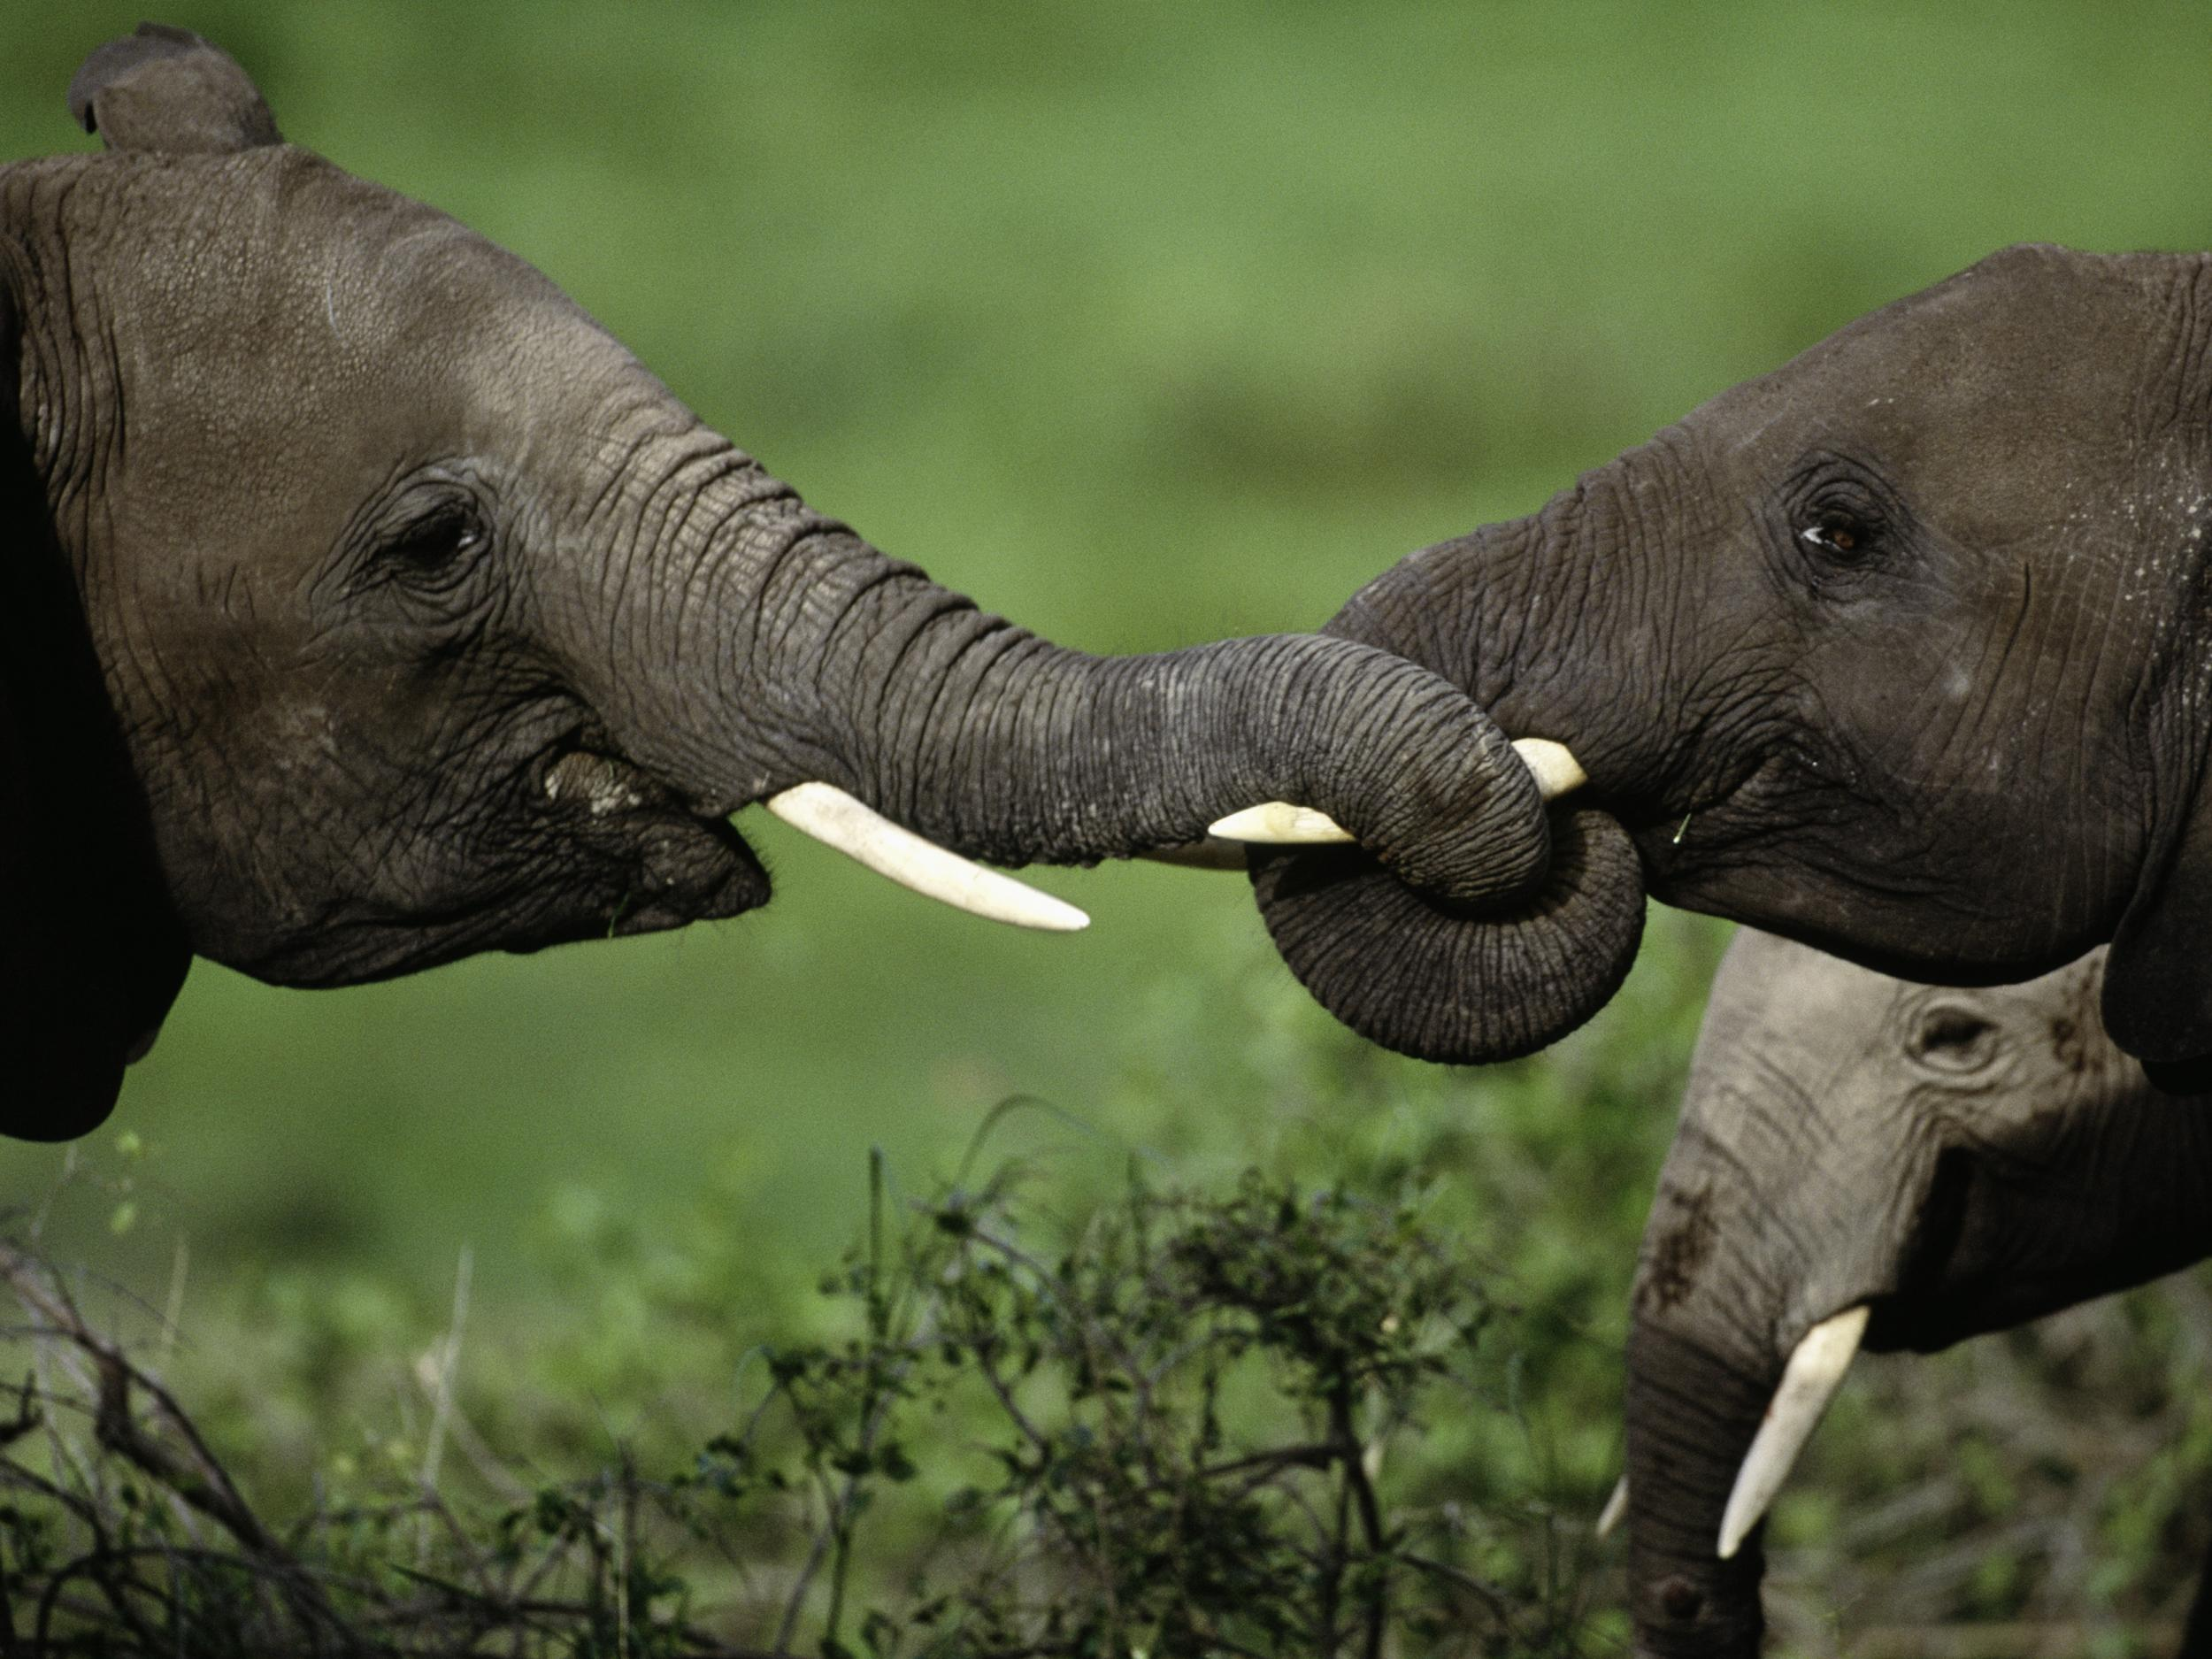 Africa's three biggest elephant poaching cartels exposed using DNA from illegal ivory shipments